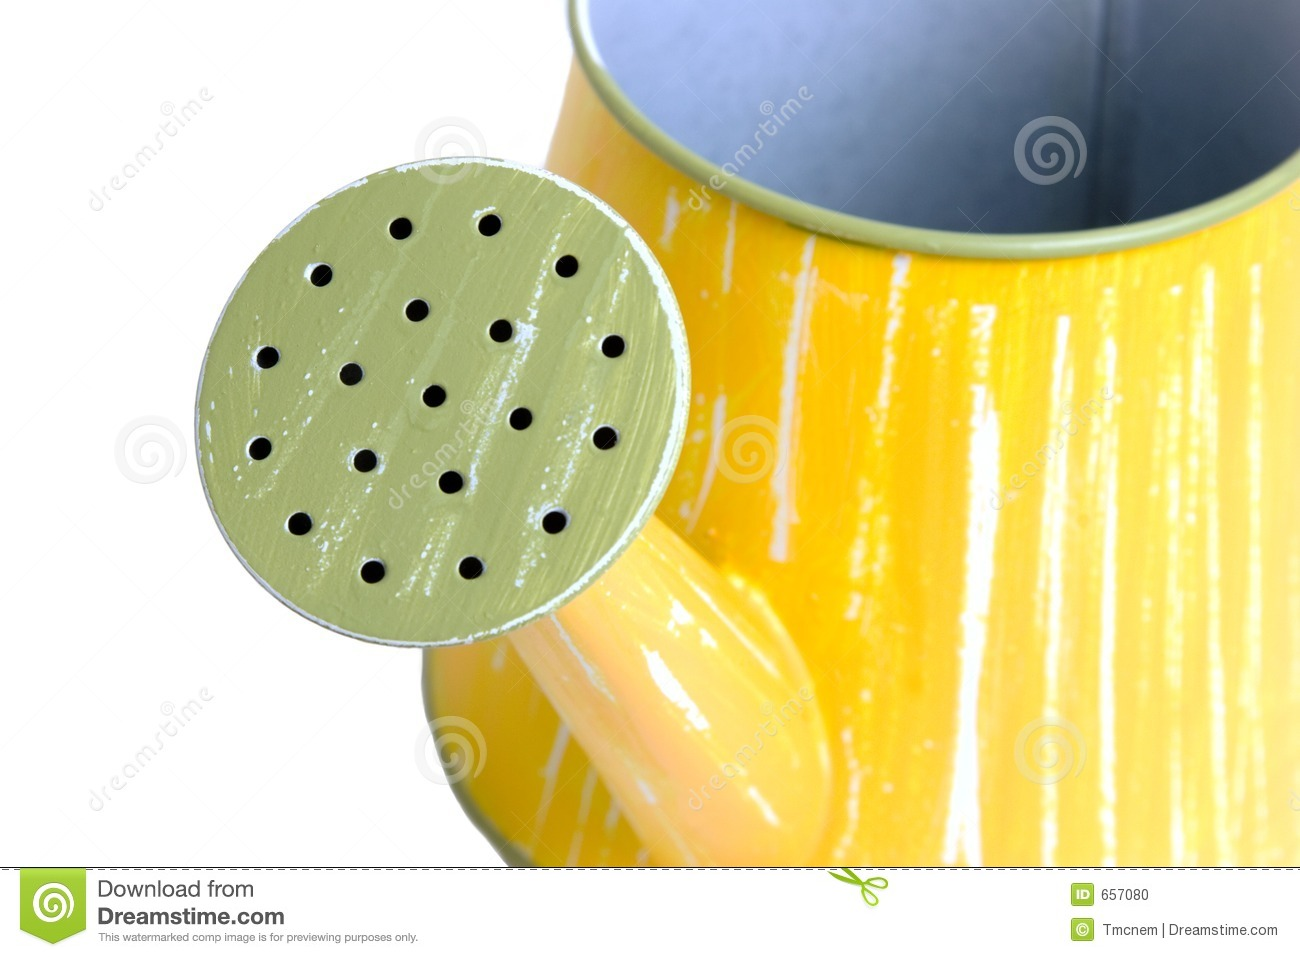 Watering Cans With Long Spouts Watering Can Spout Stock Photo Image 657080